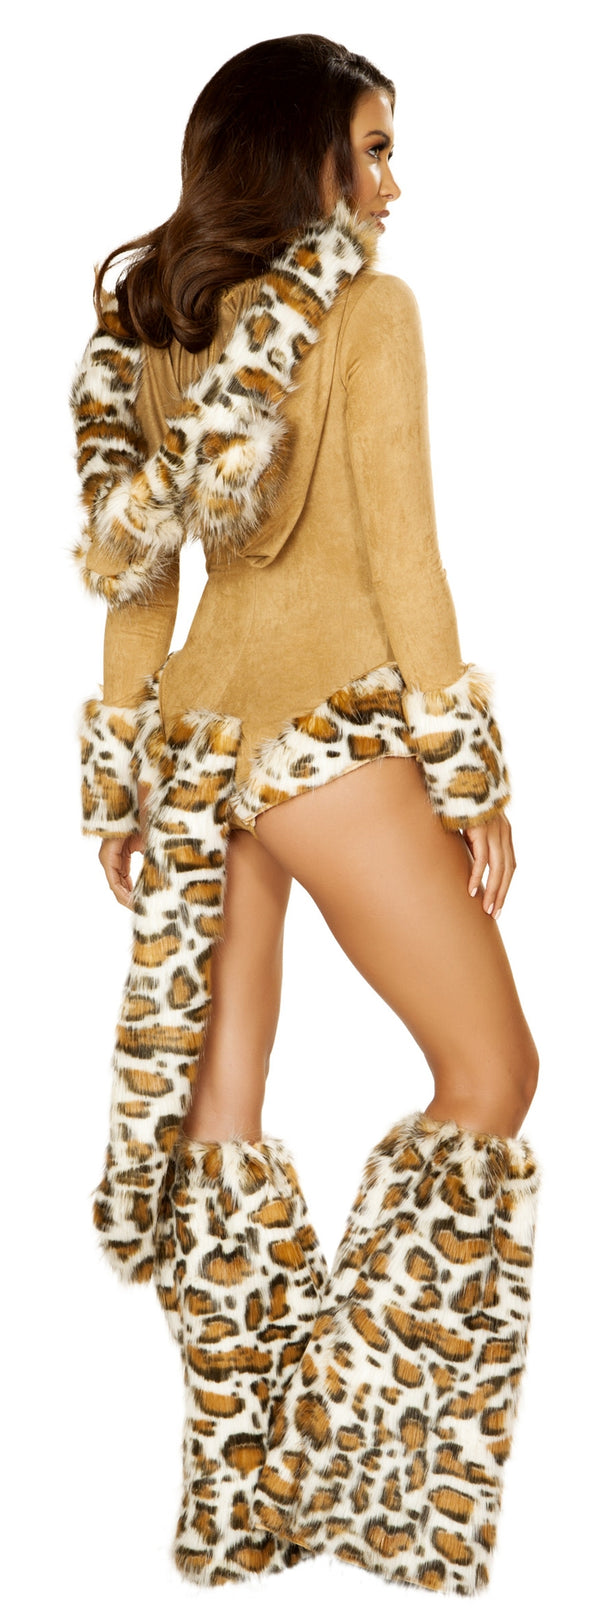 RM-4874 Leopard Princess Costume back